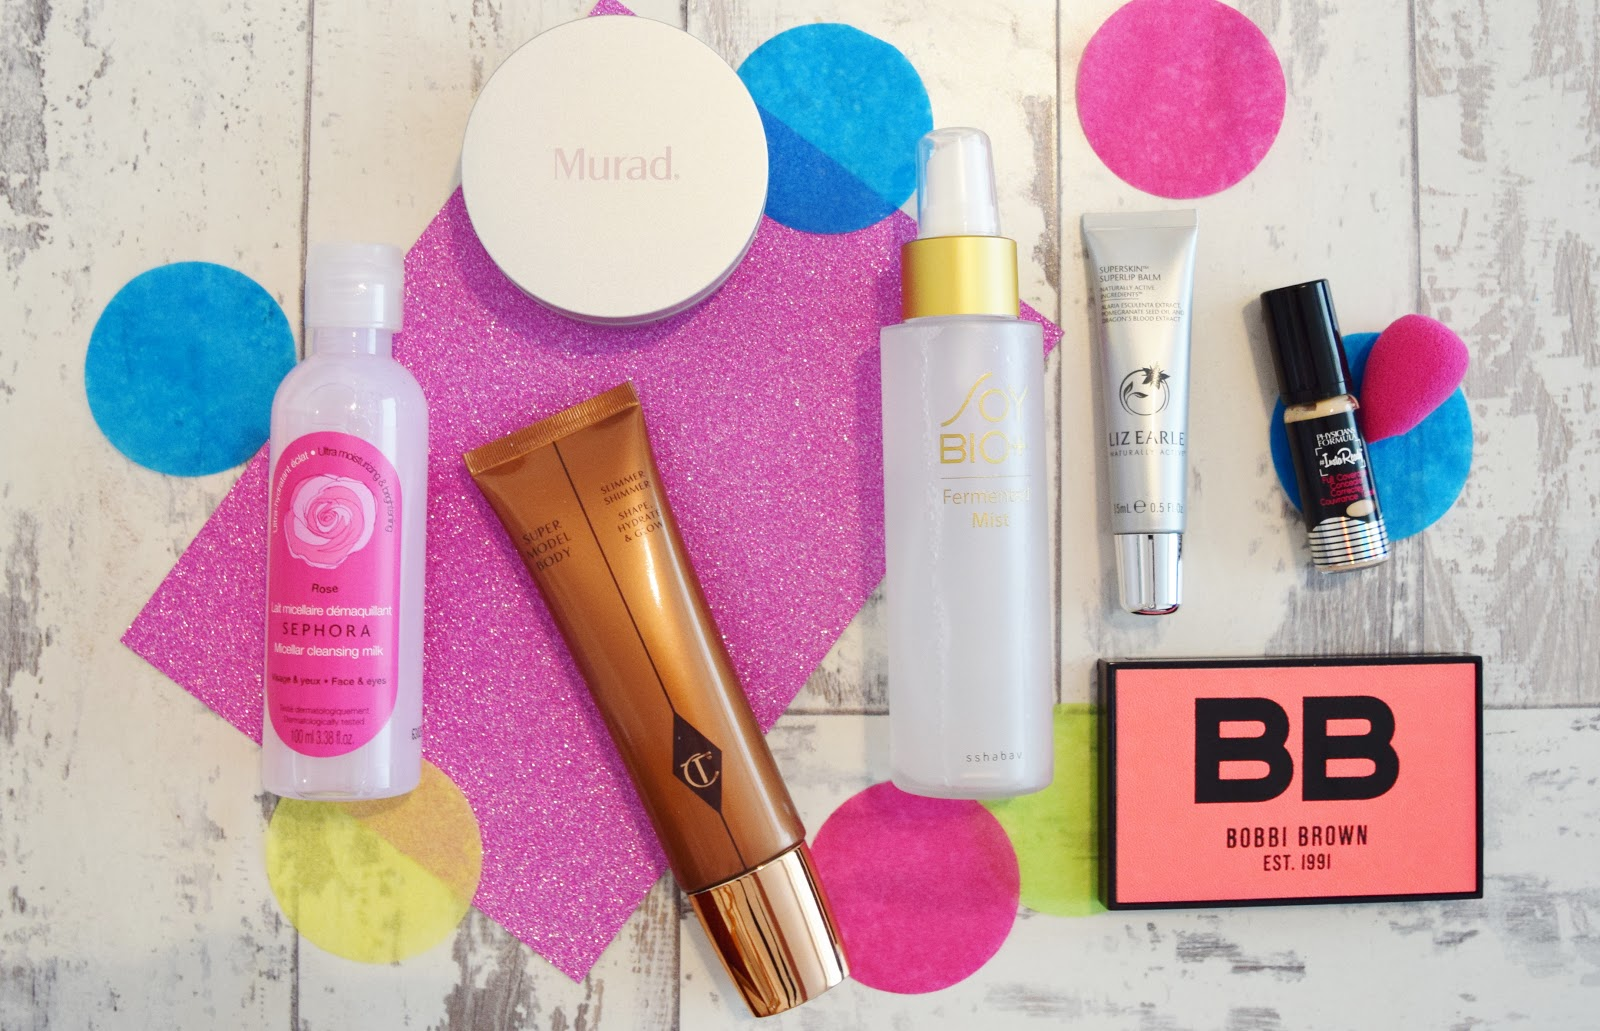 April Amp May 2017 Beauty Favourites A Life With Frills